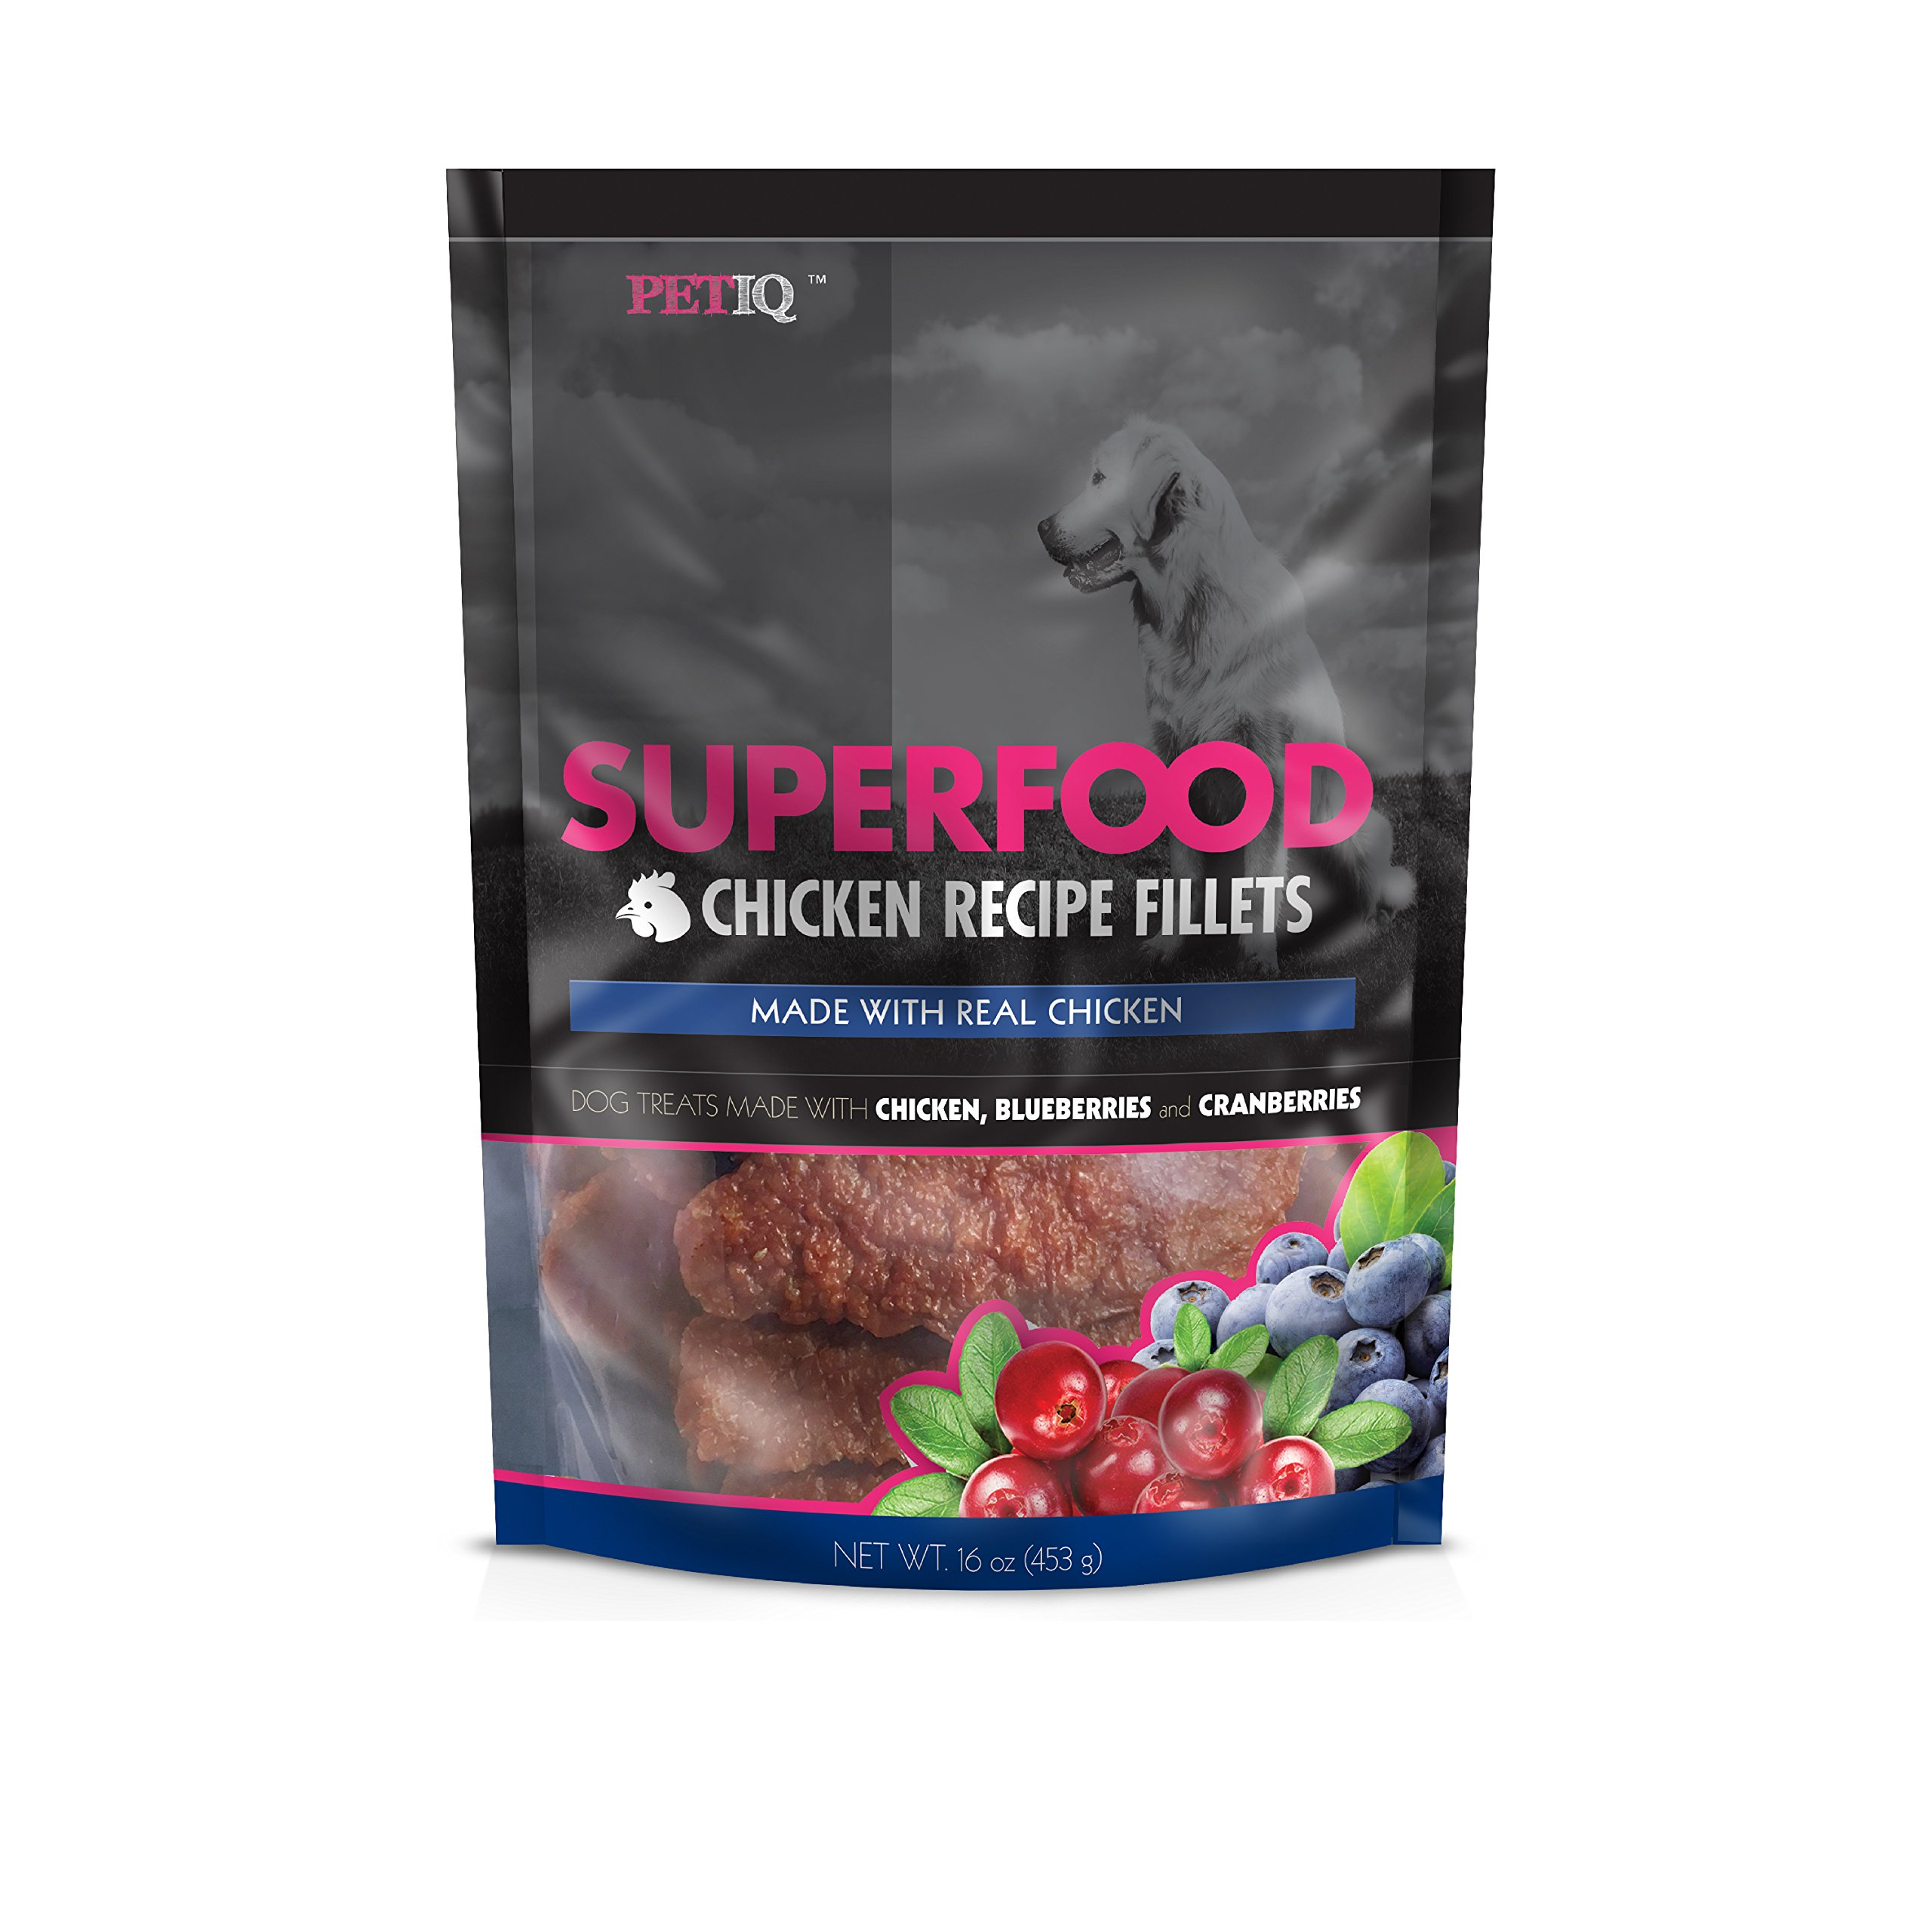 PetIQ Superfood Chicken Recipe Fillets for Dogs - Grain Free Dog Treats, 16oz